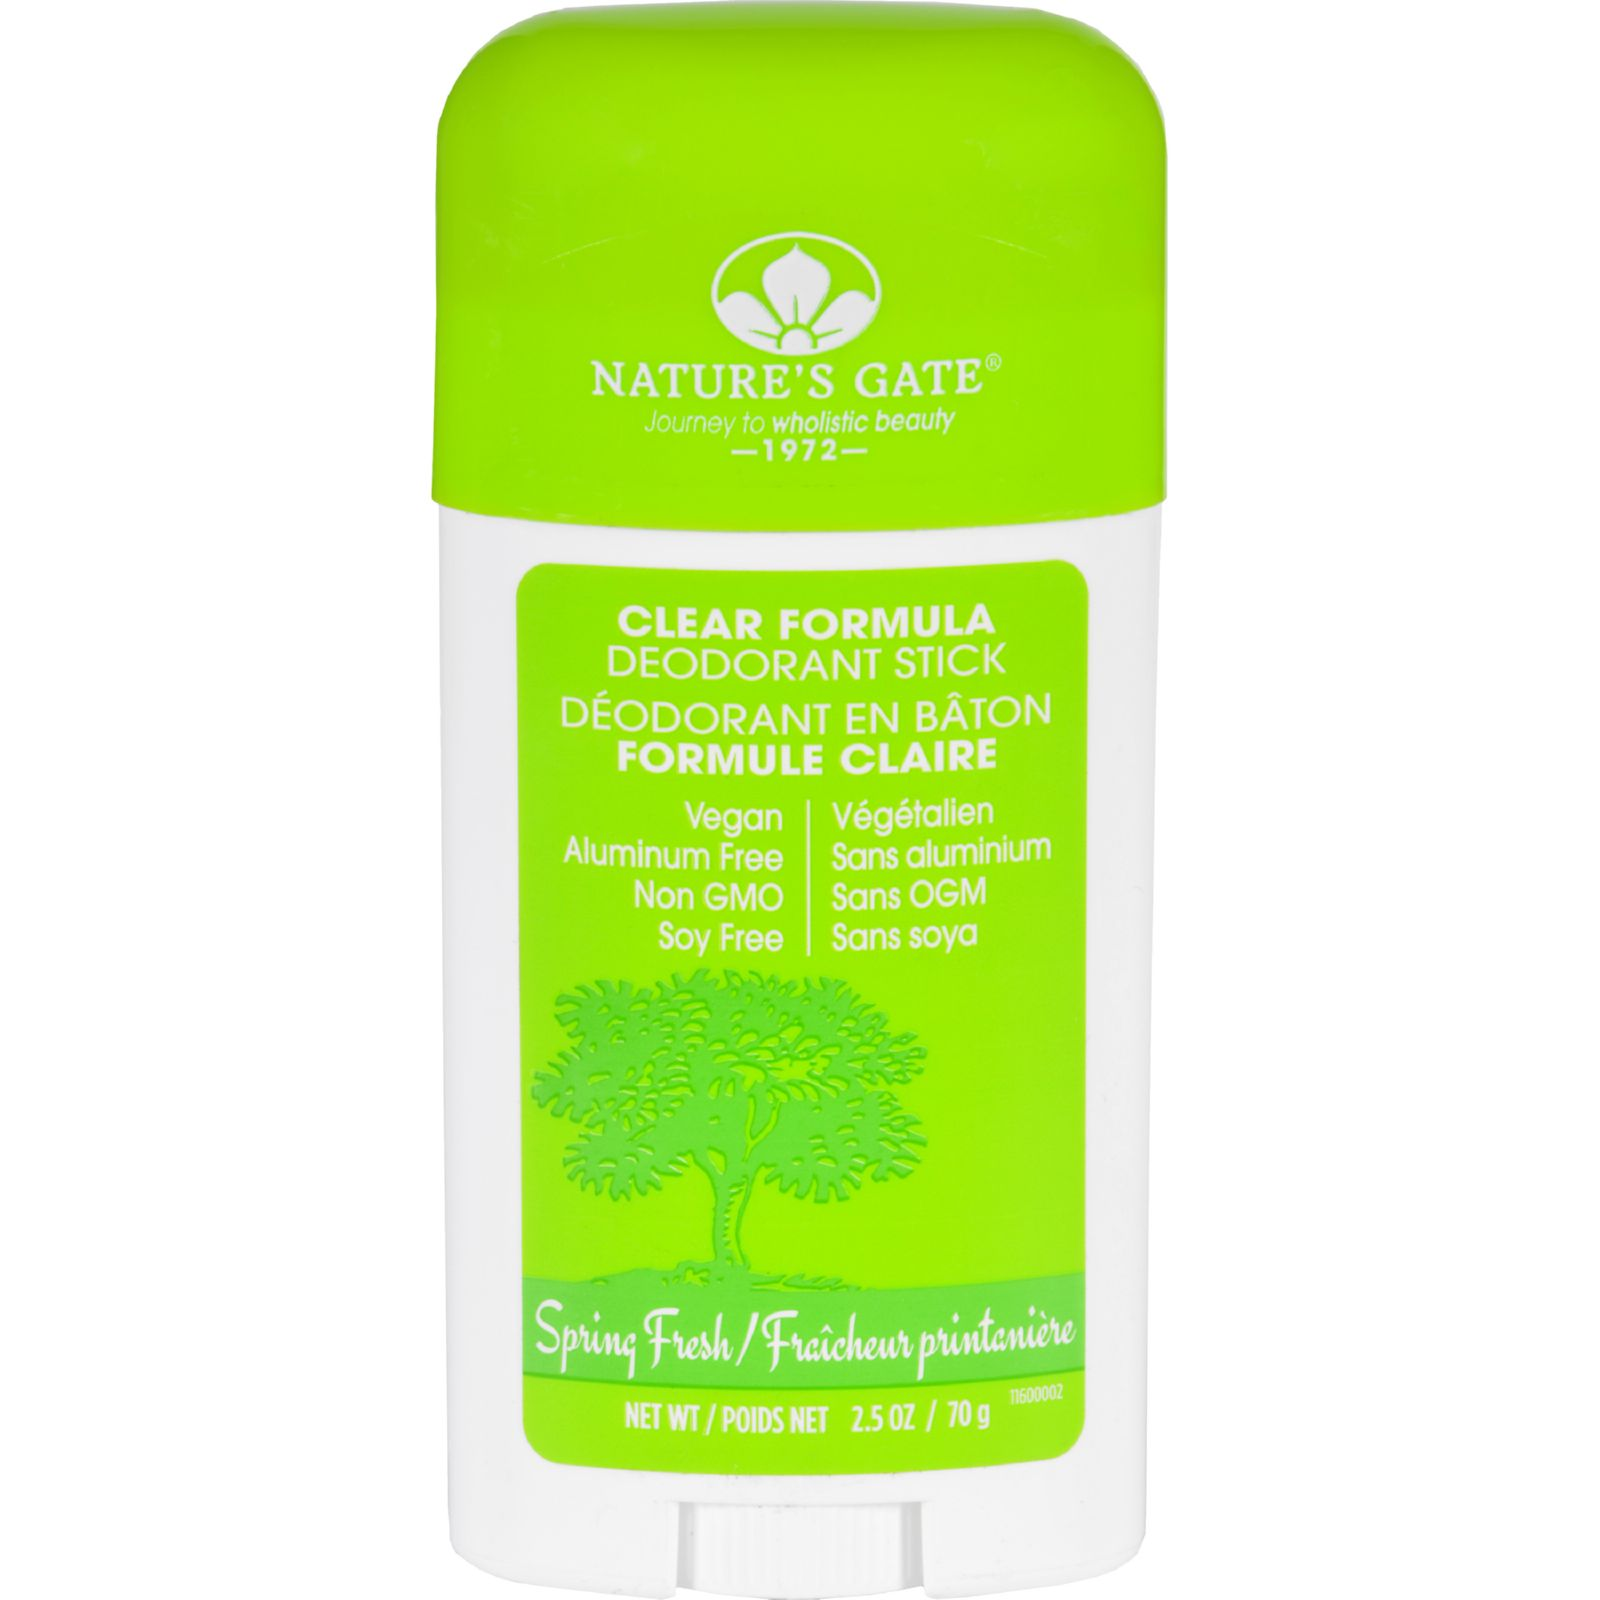 Natures Gate Deodorant  Stick  Clear Formula  Spring Fresh  2.5 oz